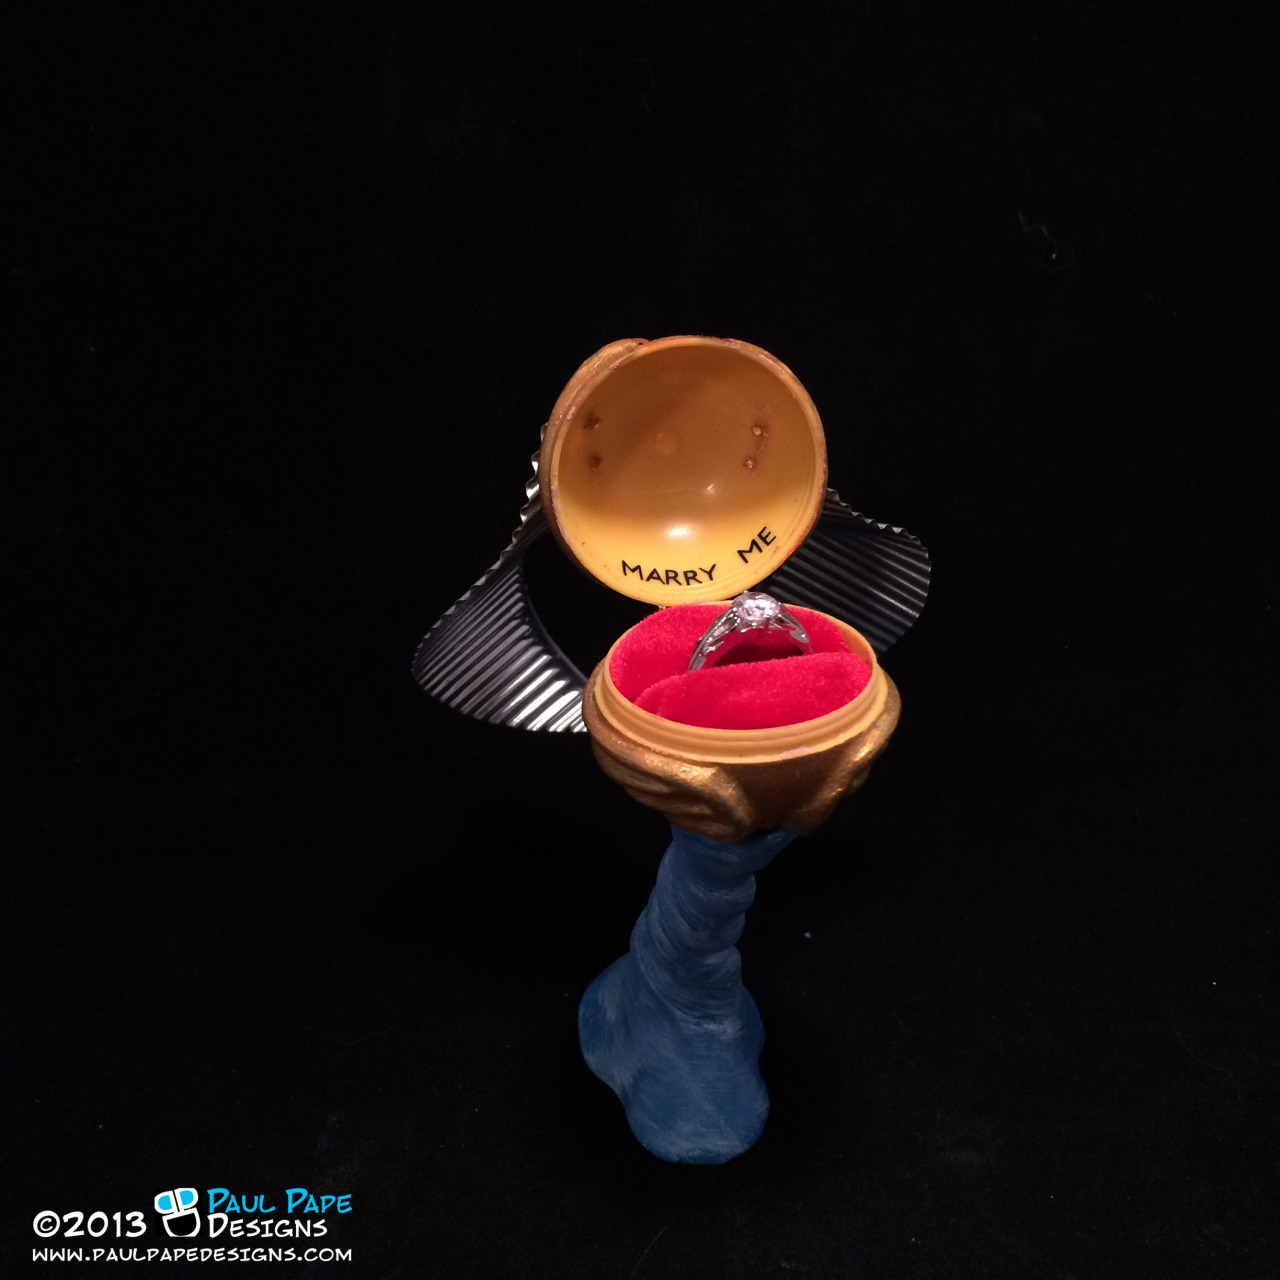 Harry Potter Golden Snitch Custom Engagement Ring Box with detachable base by Paul Pape Designs